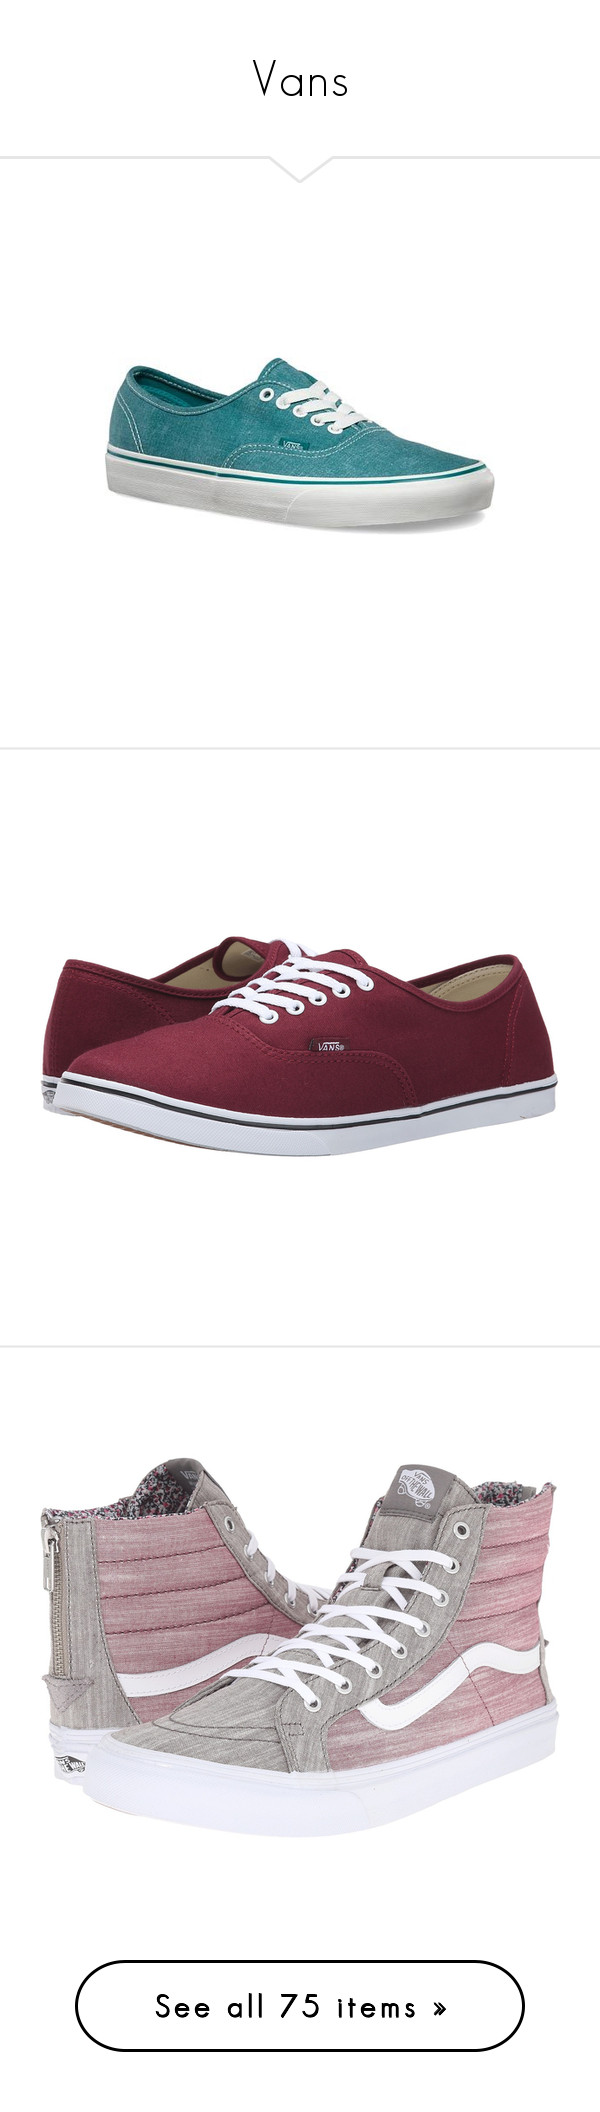 """""""Vans"""" by paukar ❤ liked on Polyvore featuring shoes, sneakers, vans, casual footwear, casual shoes, turquoise, vans sneakers, laced sneakers, low top and teal shoes"""